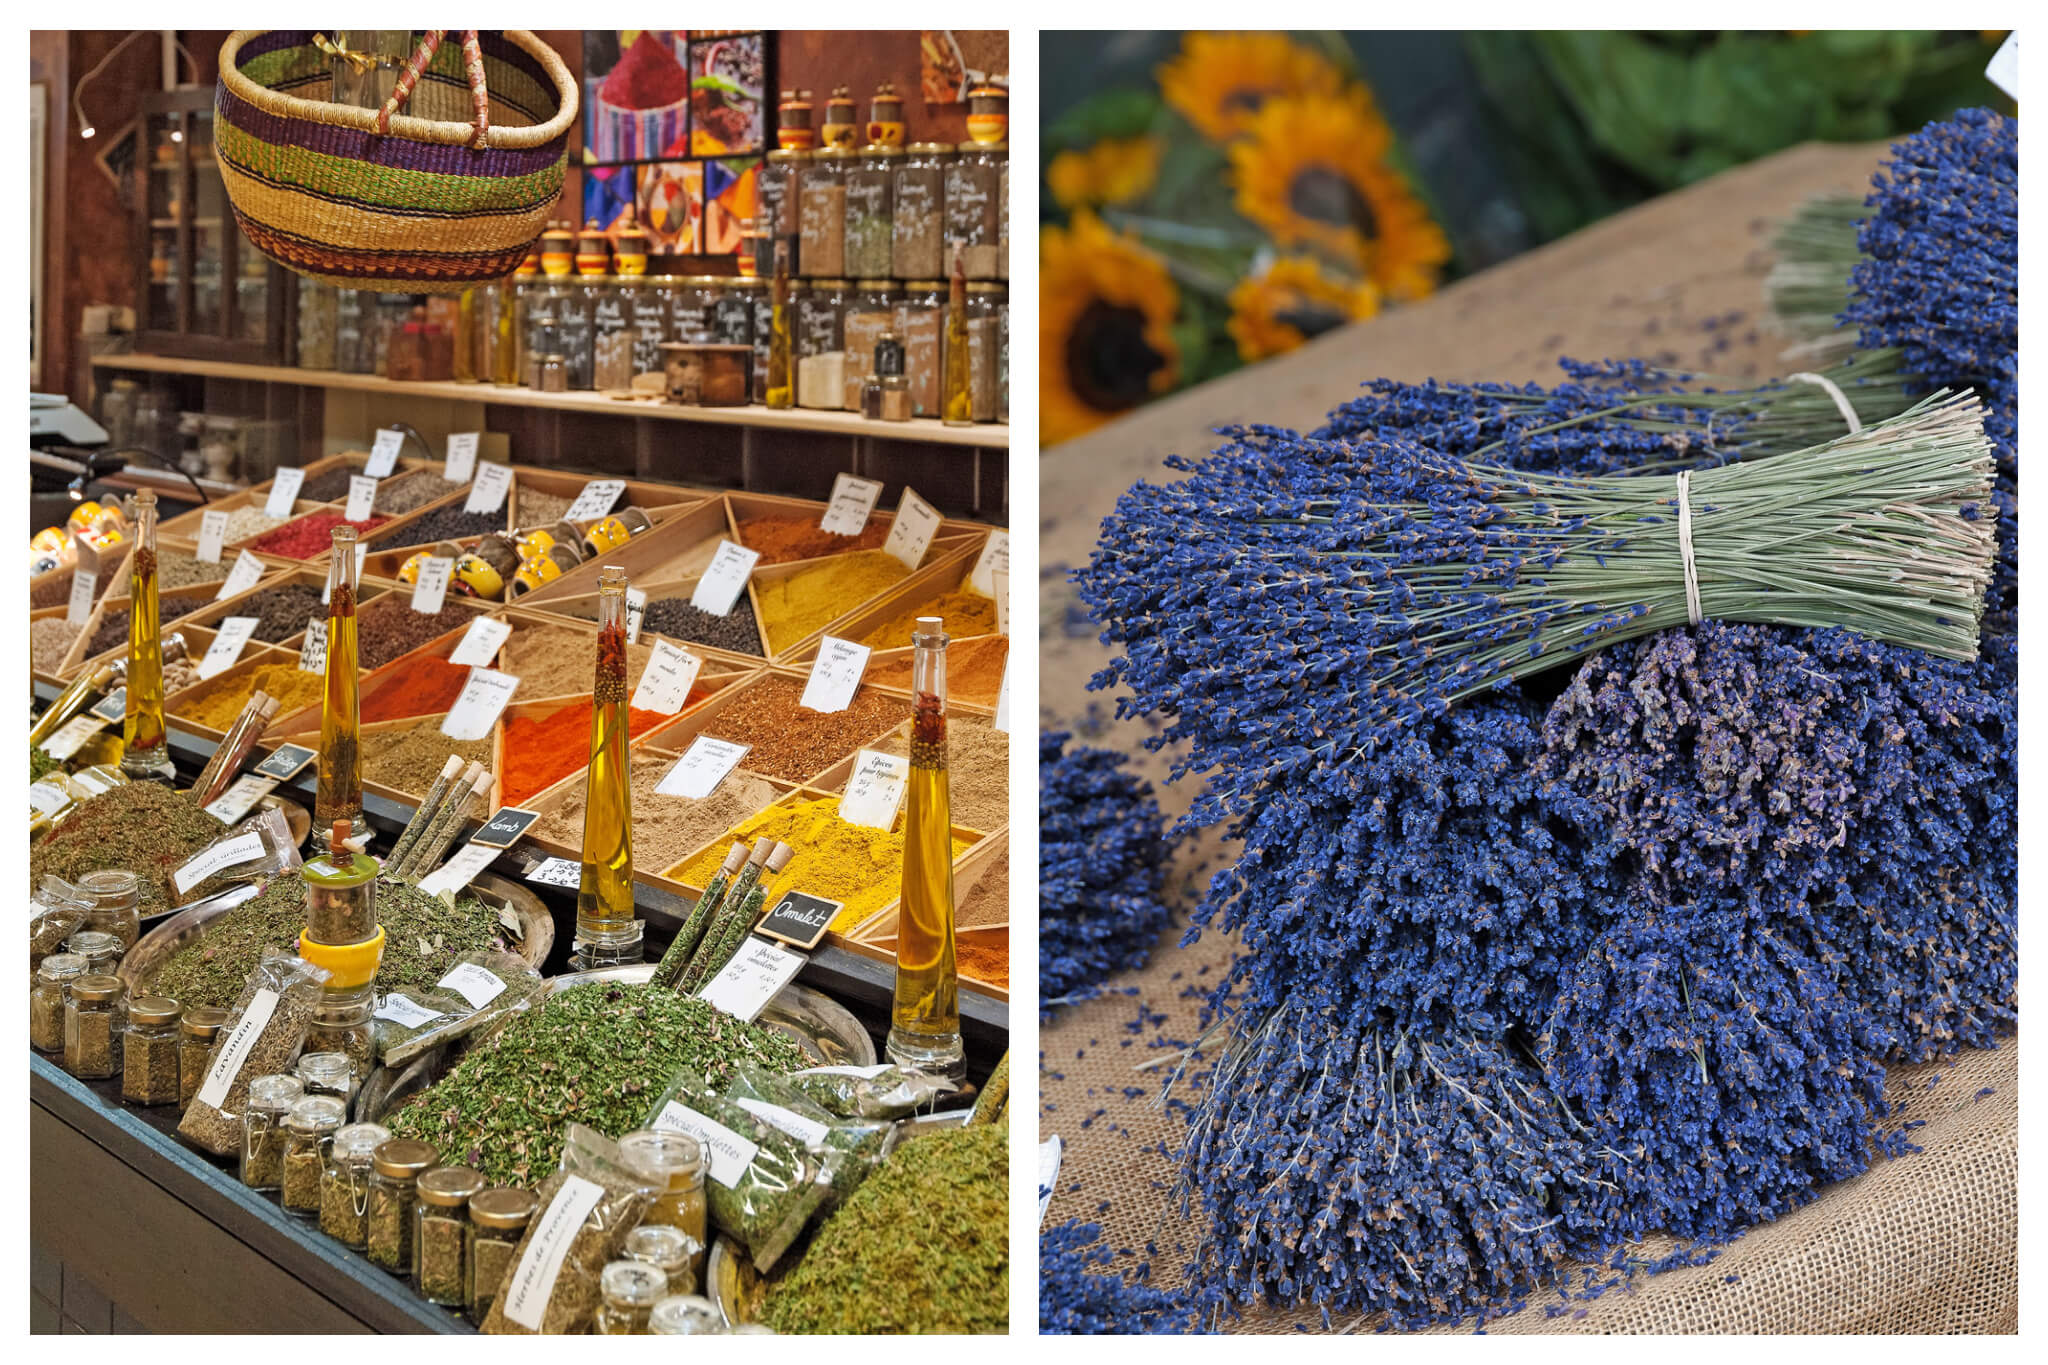 Left: various spices, herbs and oils at a market. Right: bunches of lavender with sunflowers in the background at a market.